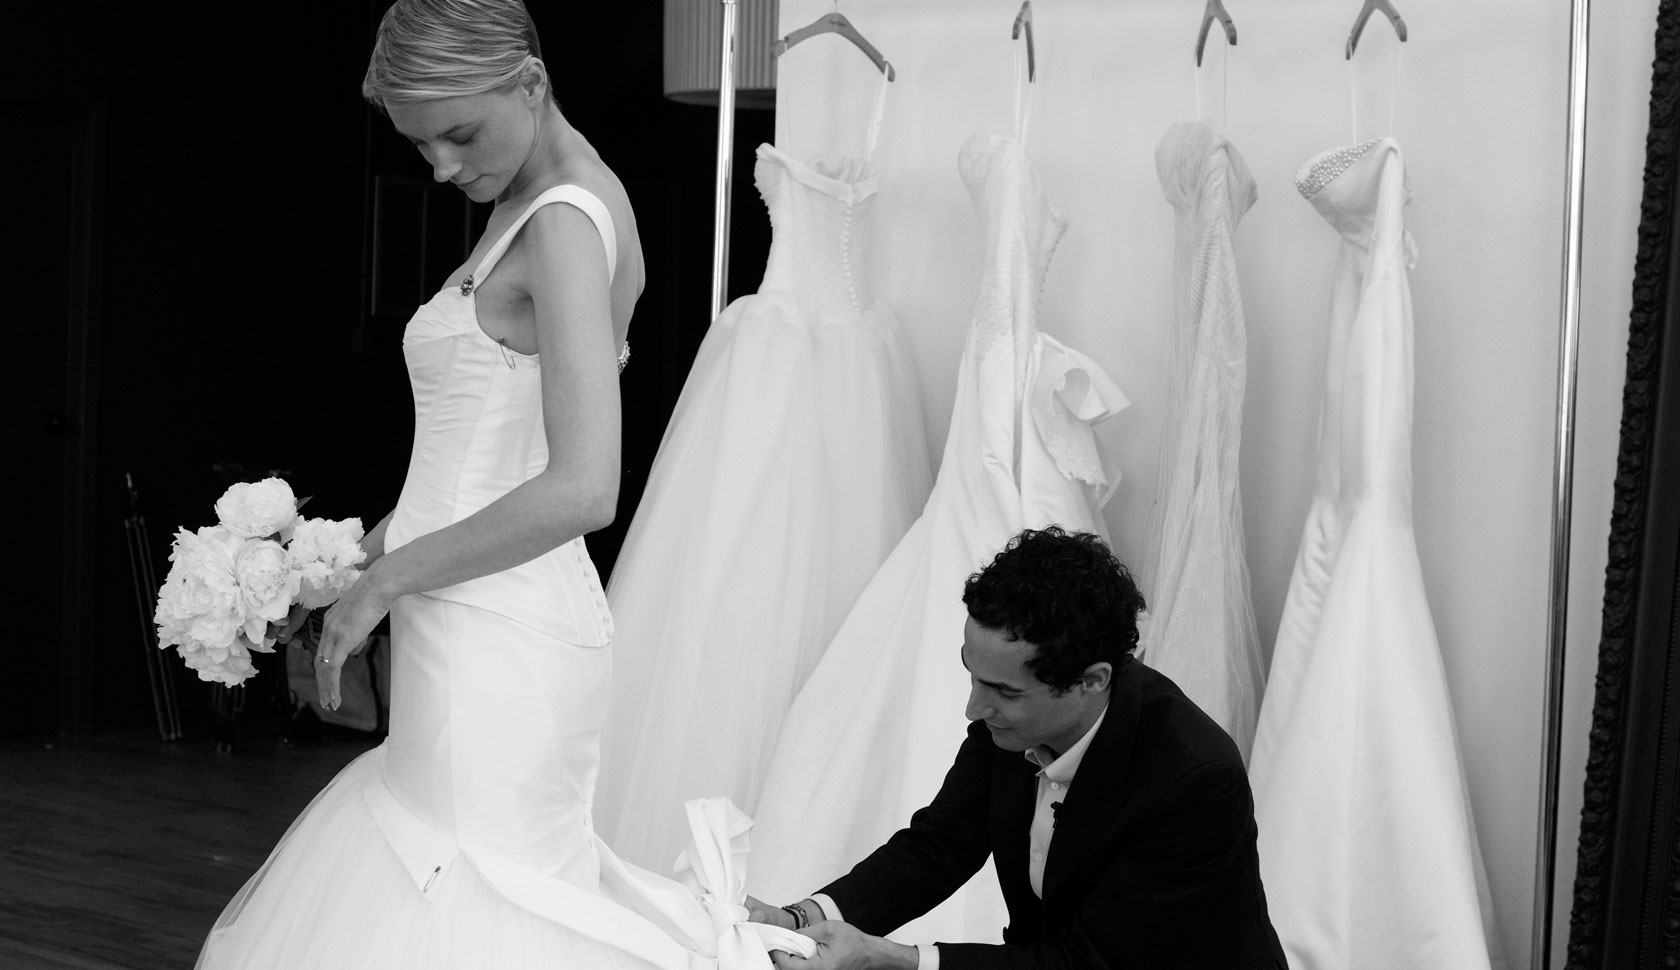 Zac Posen works on a wedding gown that is sold at David's Bridal.